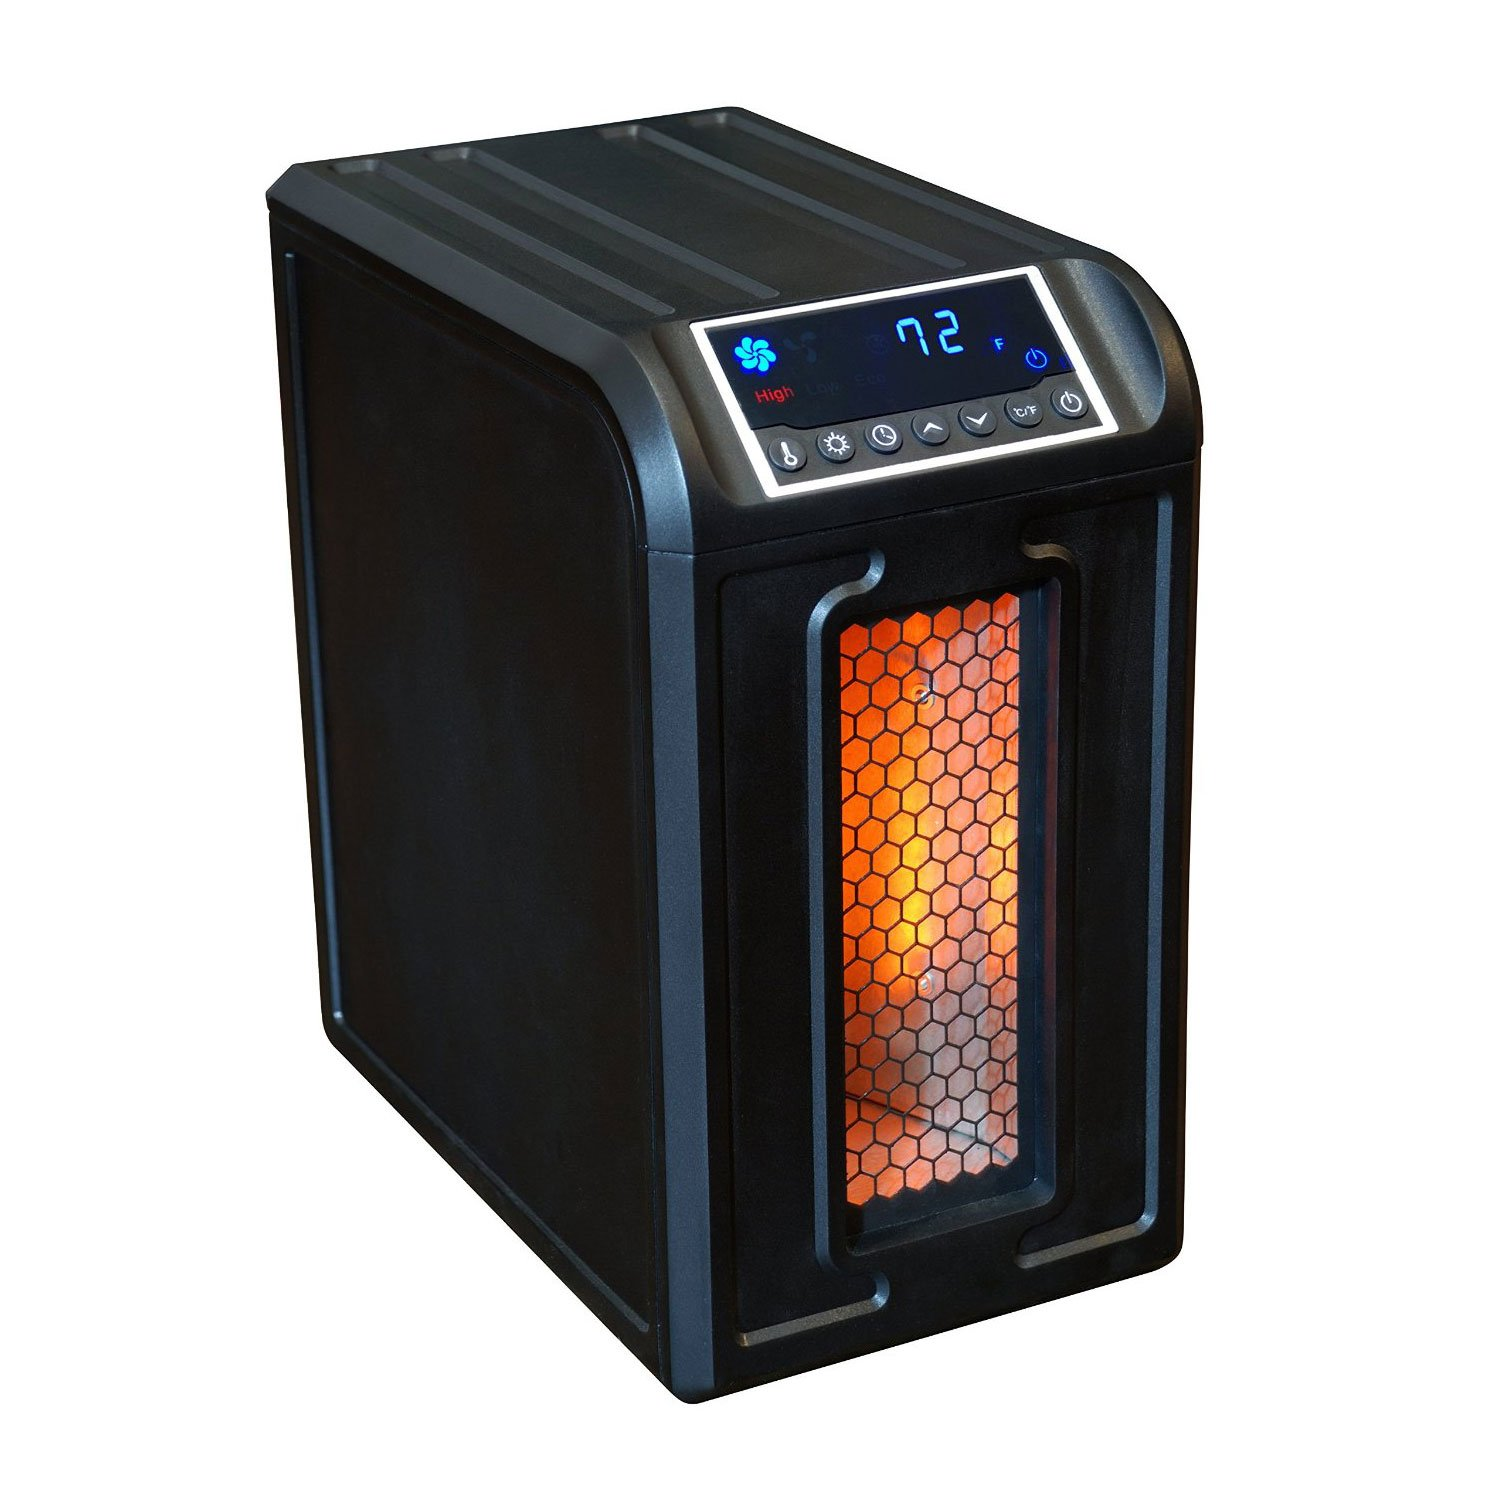 This Lifesmart infrared heater offers great performance and good value for money.